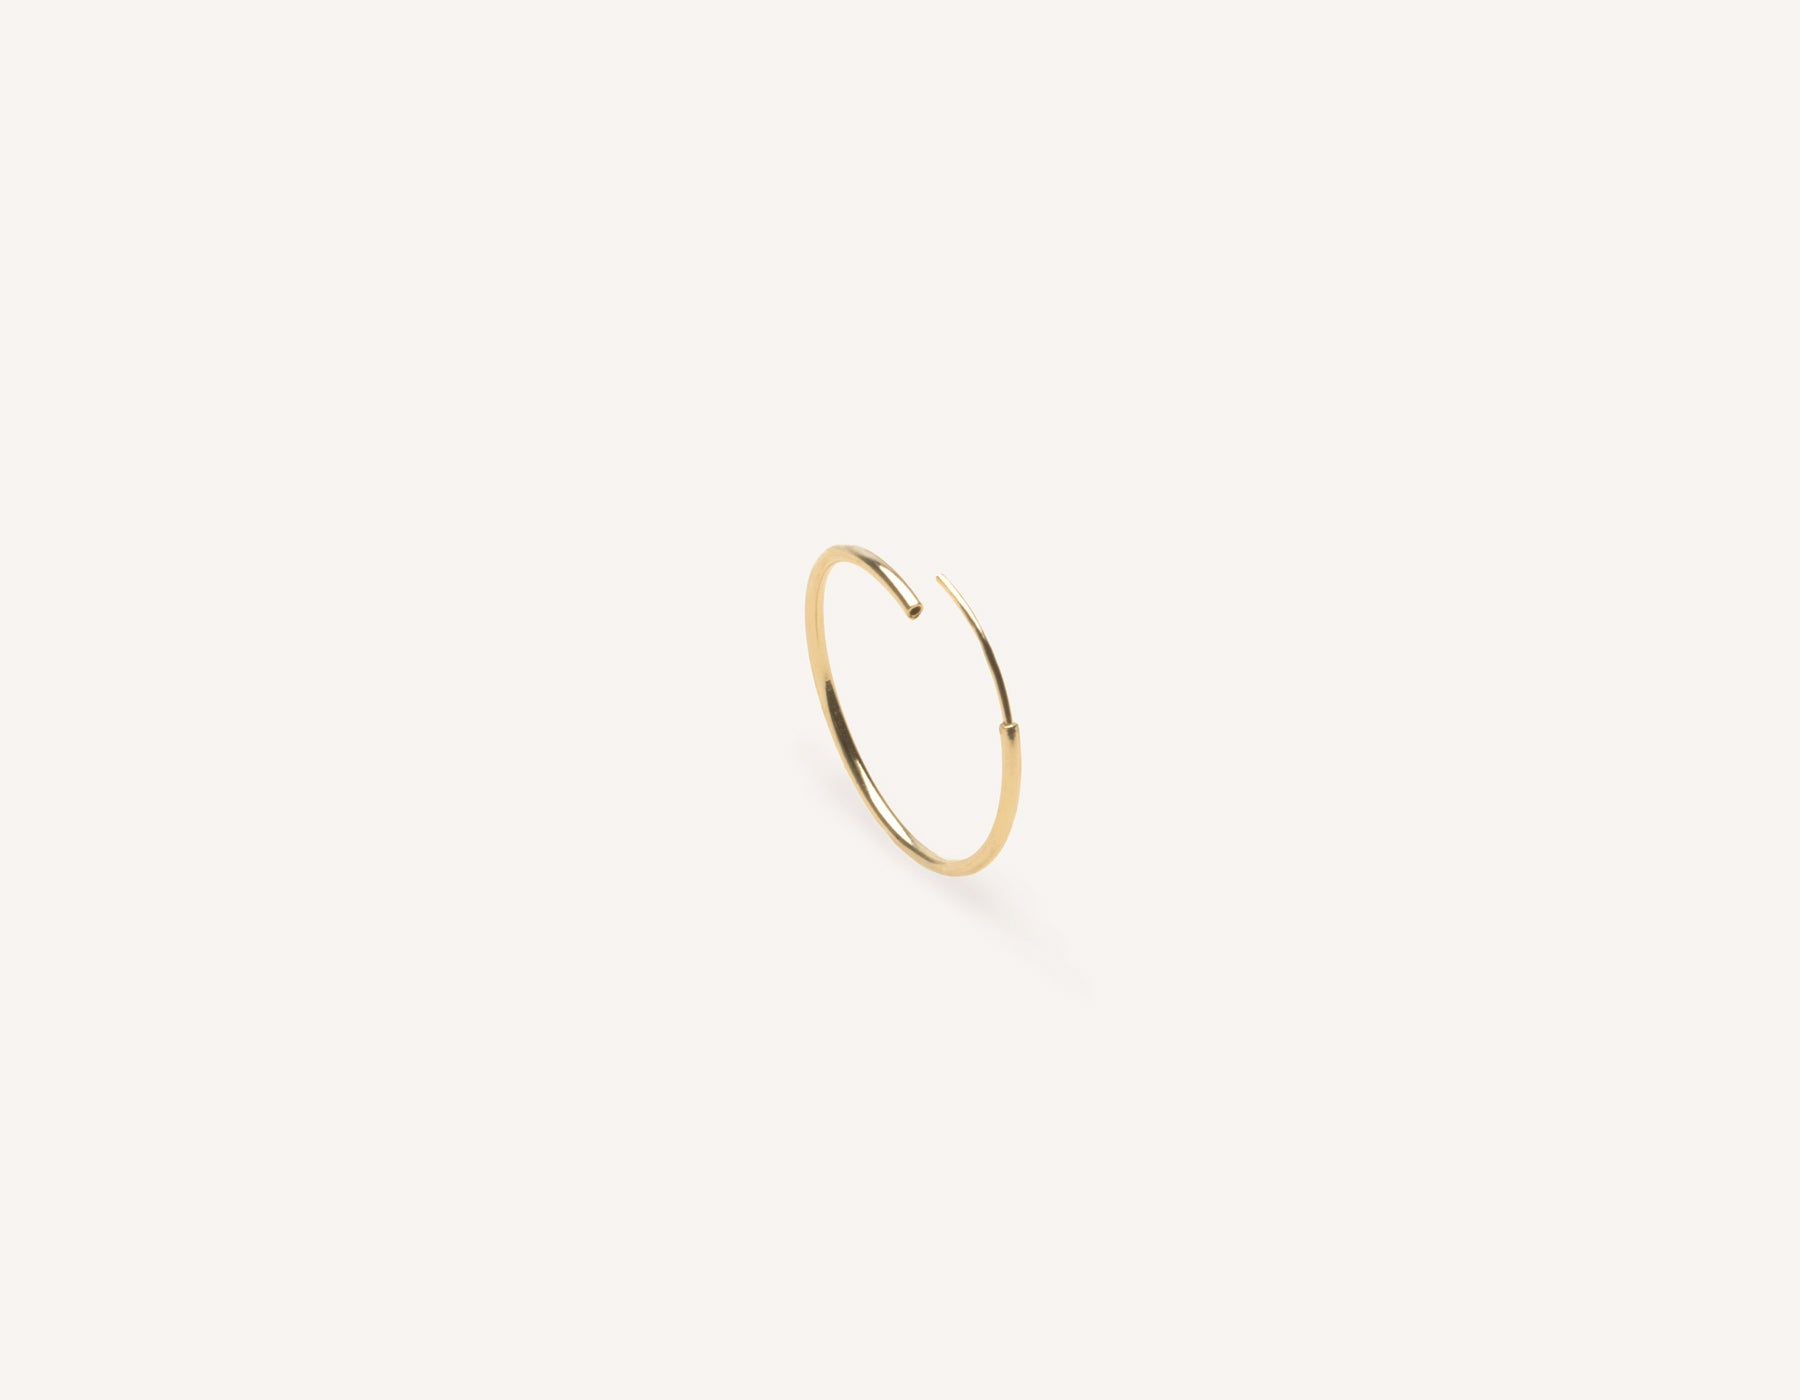 delicate sleek Medium Lightweight Hoops 14k solid gold Vrai and Oro minimalist jewelry, 14K Yellow Gold